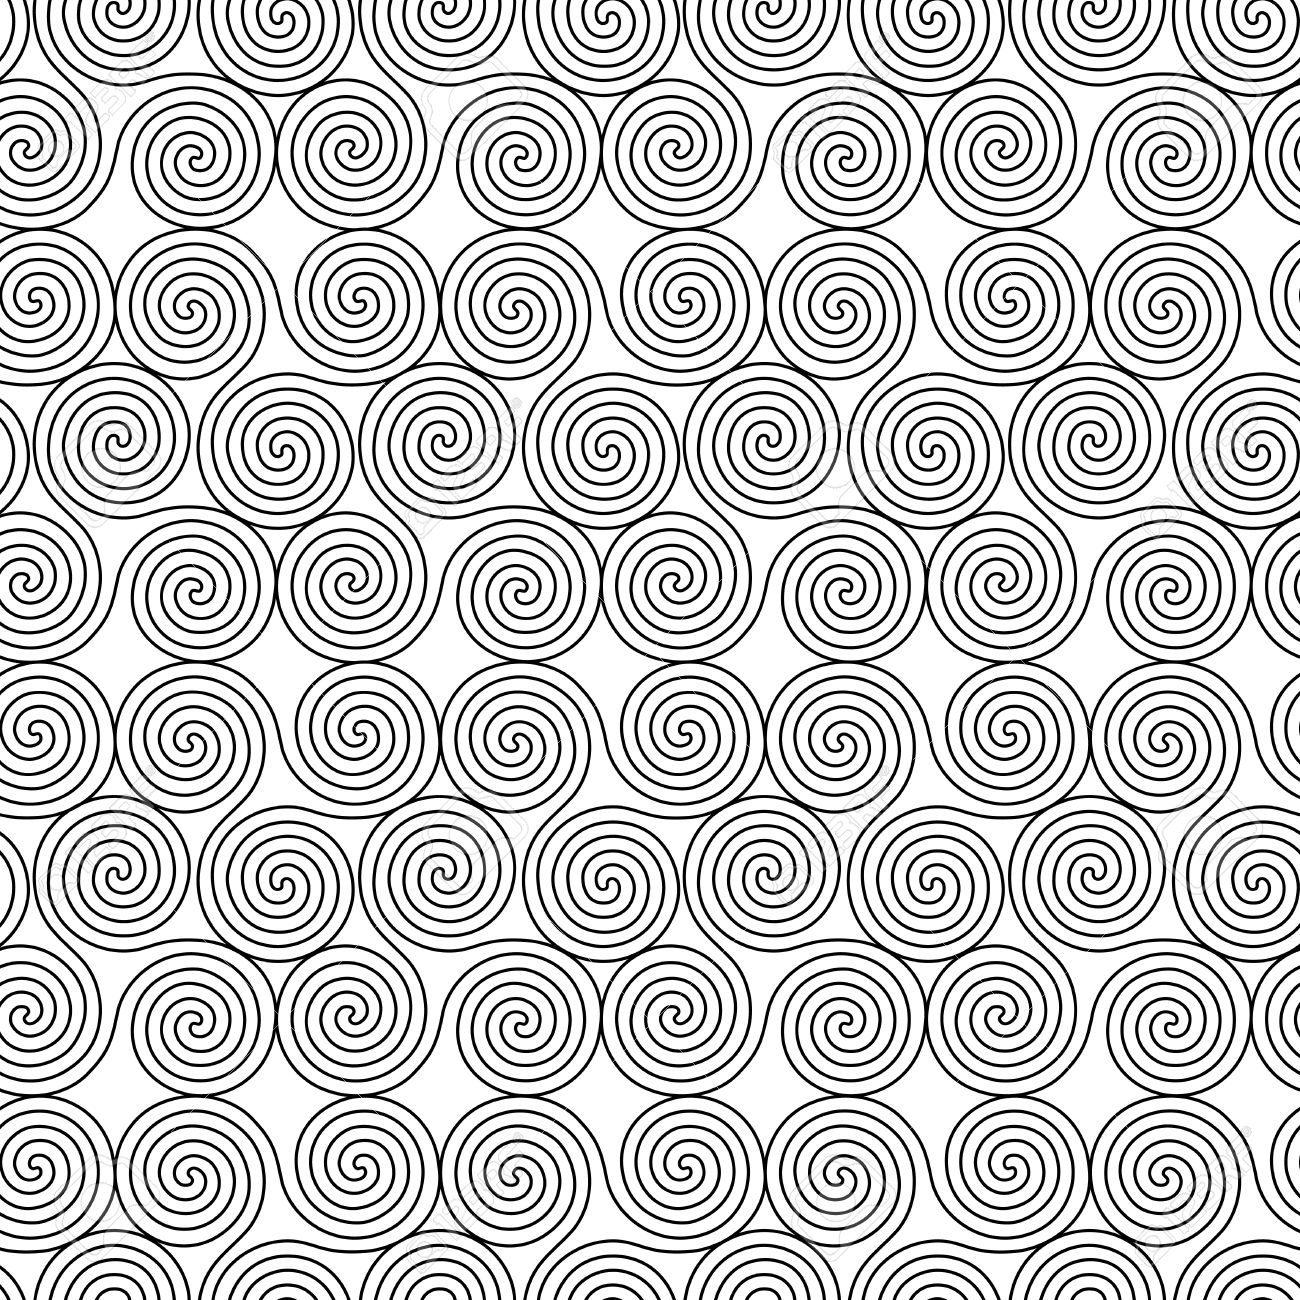 Monochrome seamless vector pattern with swirling triple spiral monochrome seamless vector pattern with swirling triple spiral or triskele a complex ancient celtic symbol buycottarizona Images